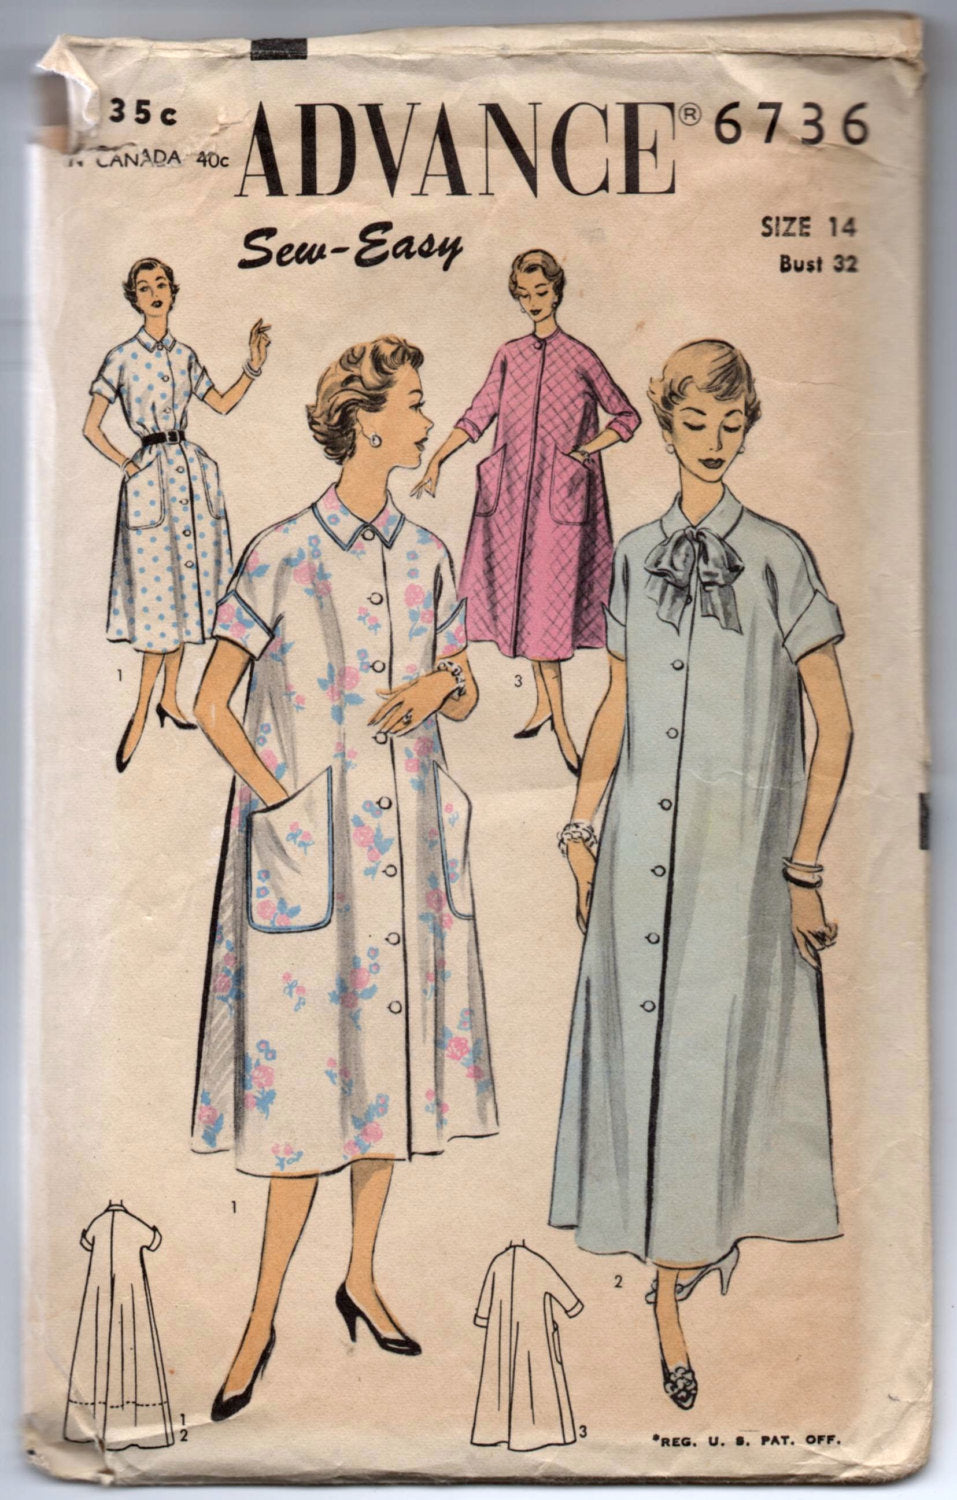 1950's Advance Robe or House Dress pattern - Bust 32